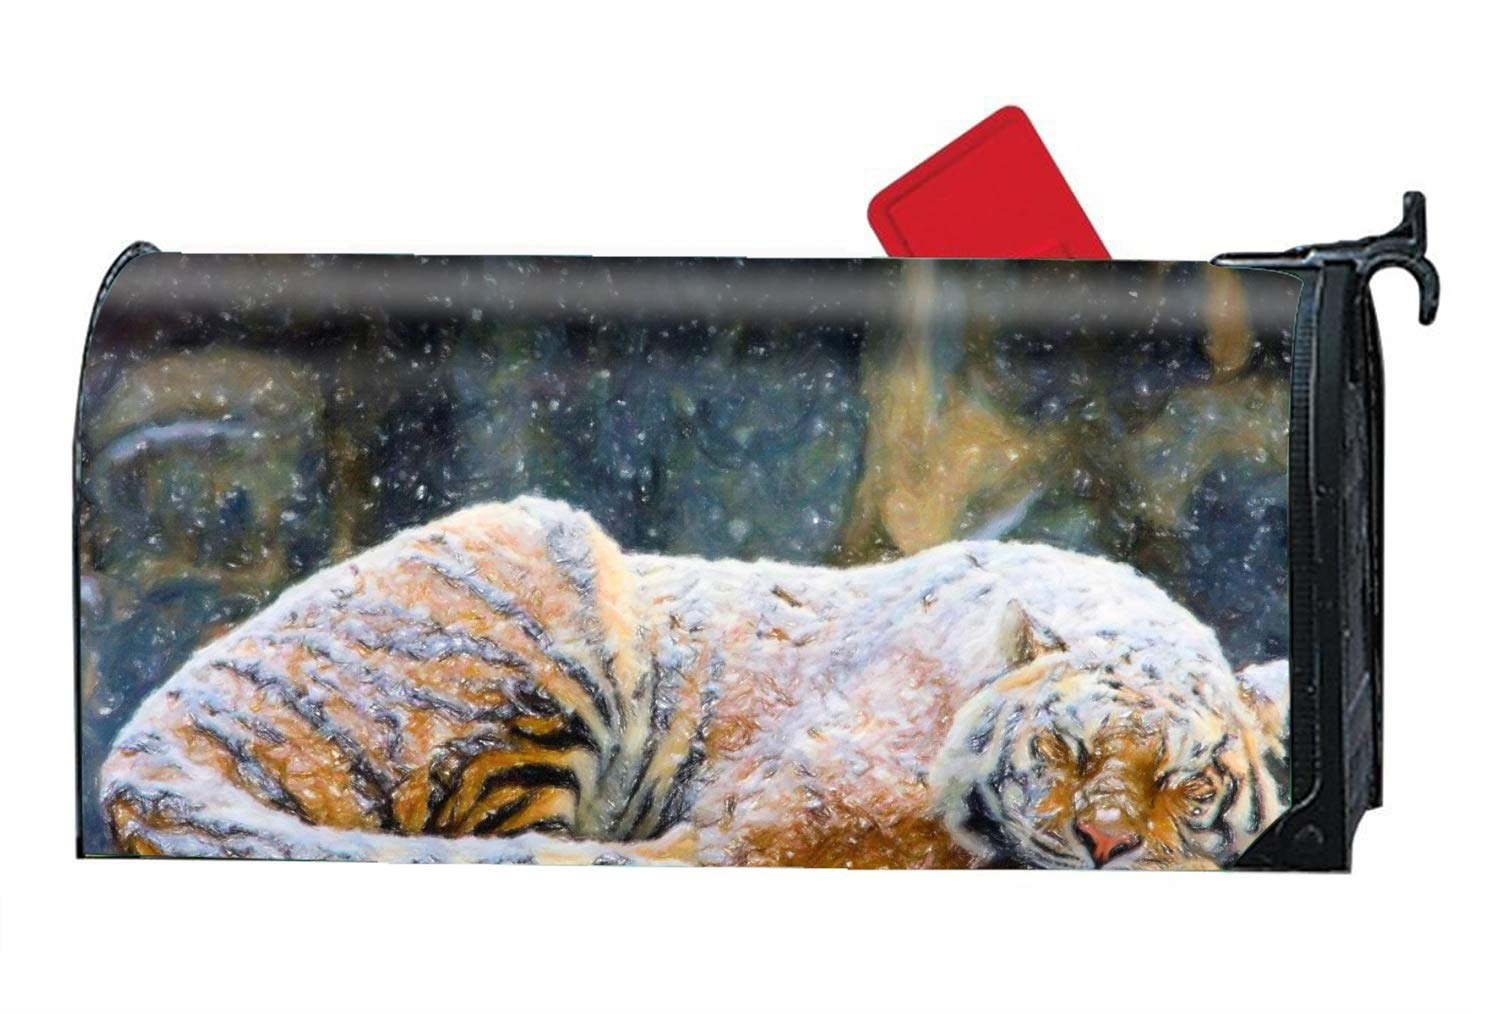 BABBY Mailbox Covers Sleeping Tiger Front Door Decor - Vinyl Magnetic Cover